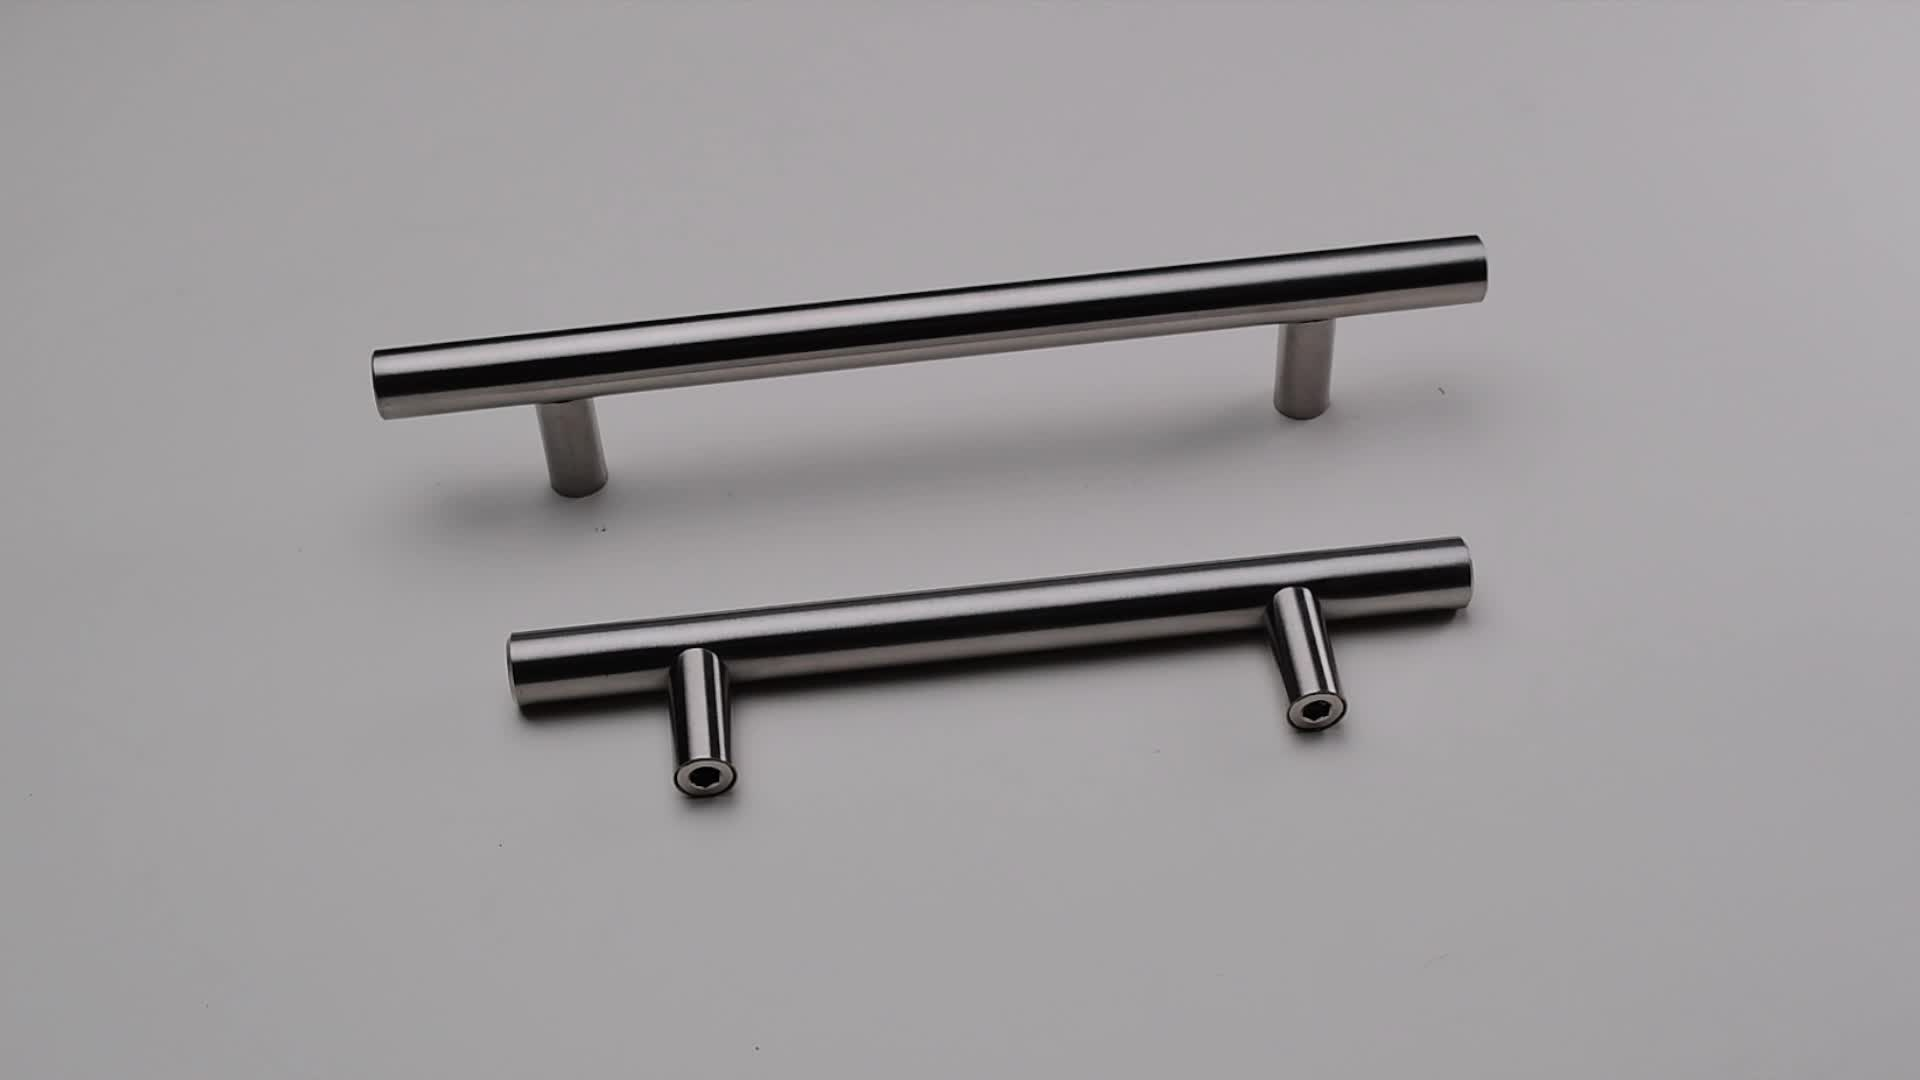 New Selling Furniture Hardware Bedroom Stainless Steel Drawer Accessory Pull Cabinet Handles T bar furniture handle